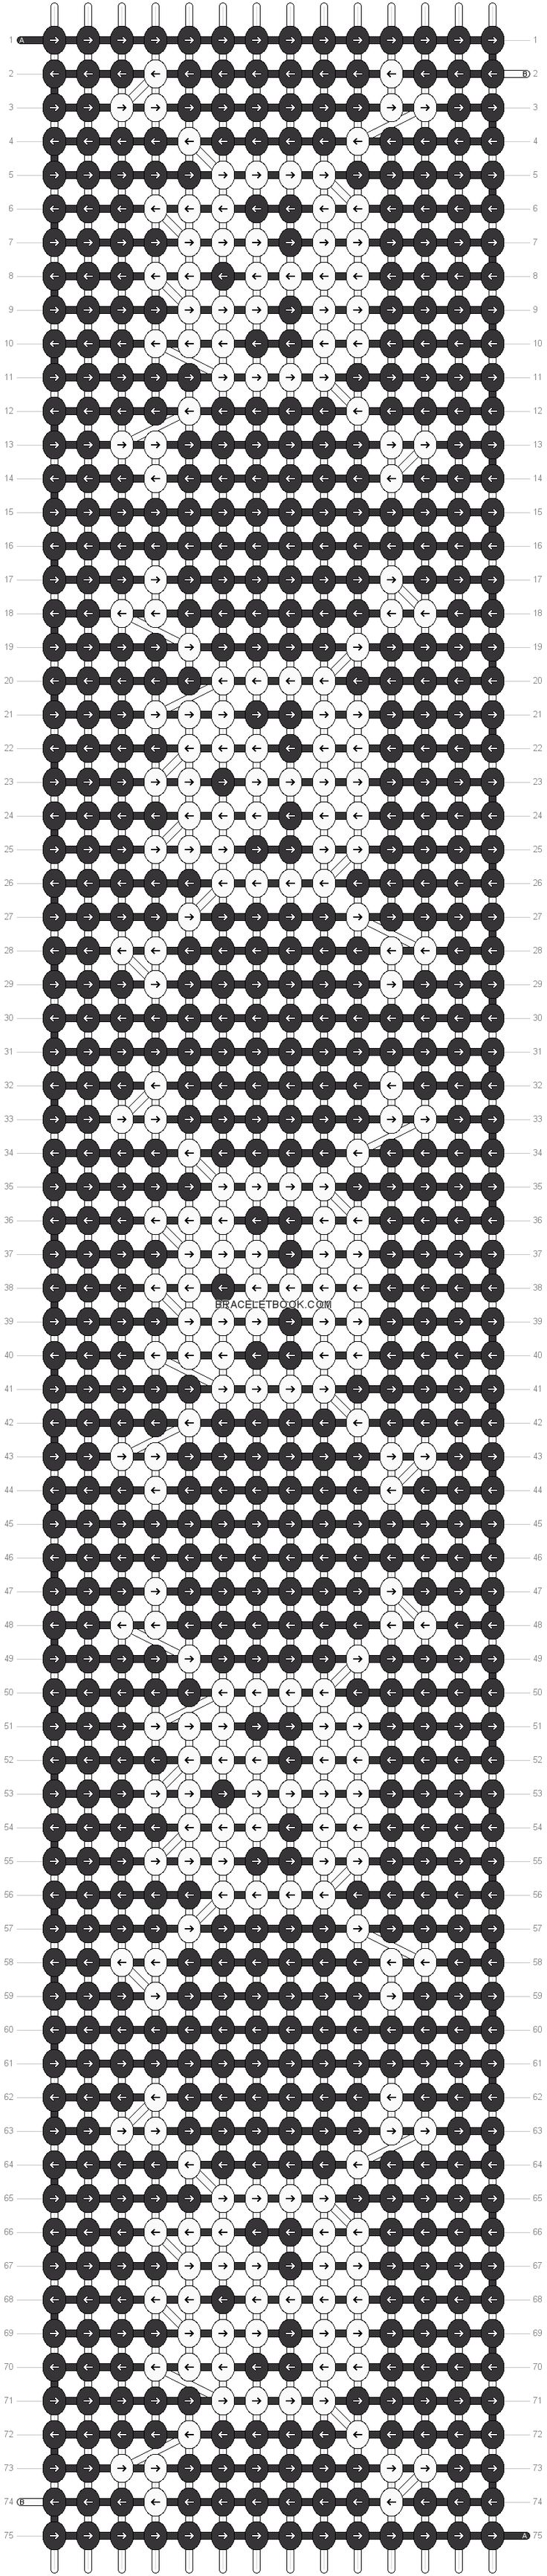 Skull friendship bracelet pattern number 15498 - For more halloween patterns visit our web or the app!